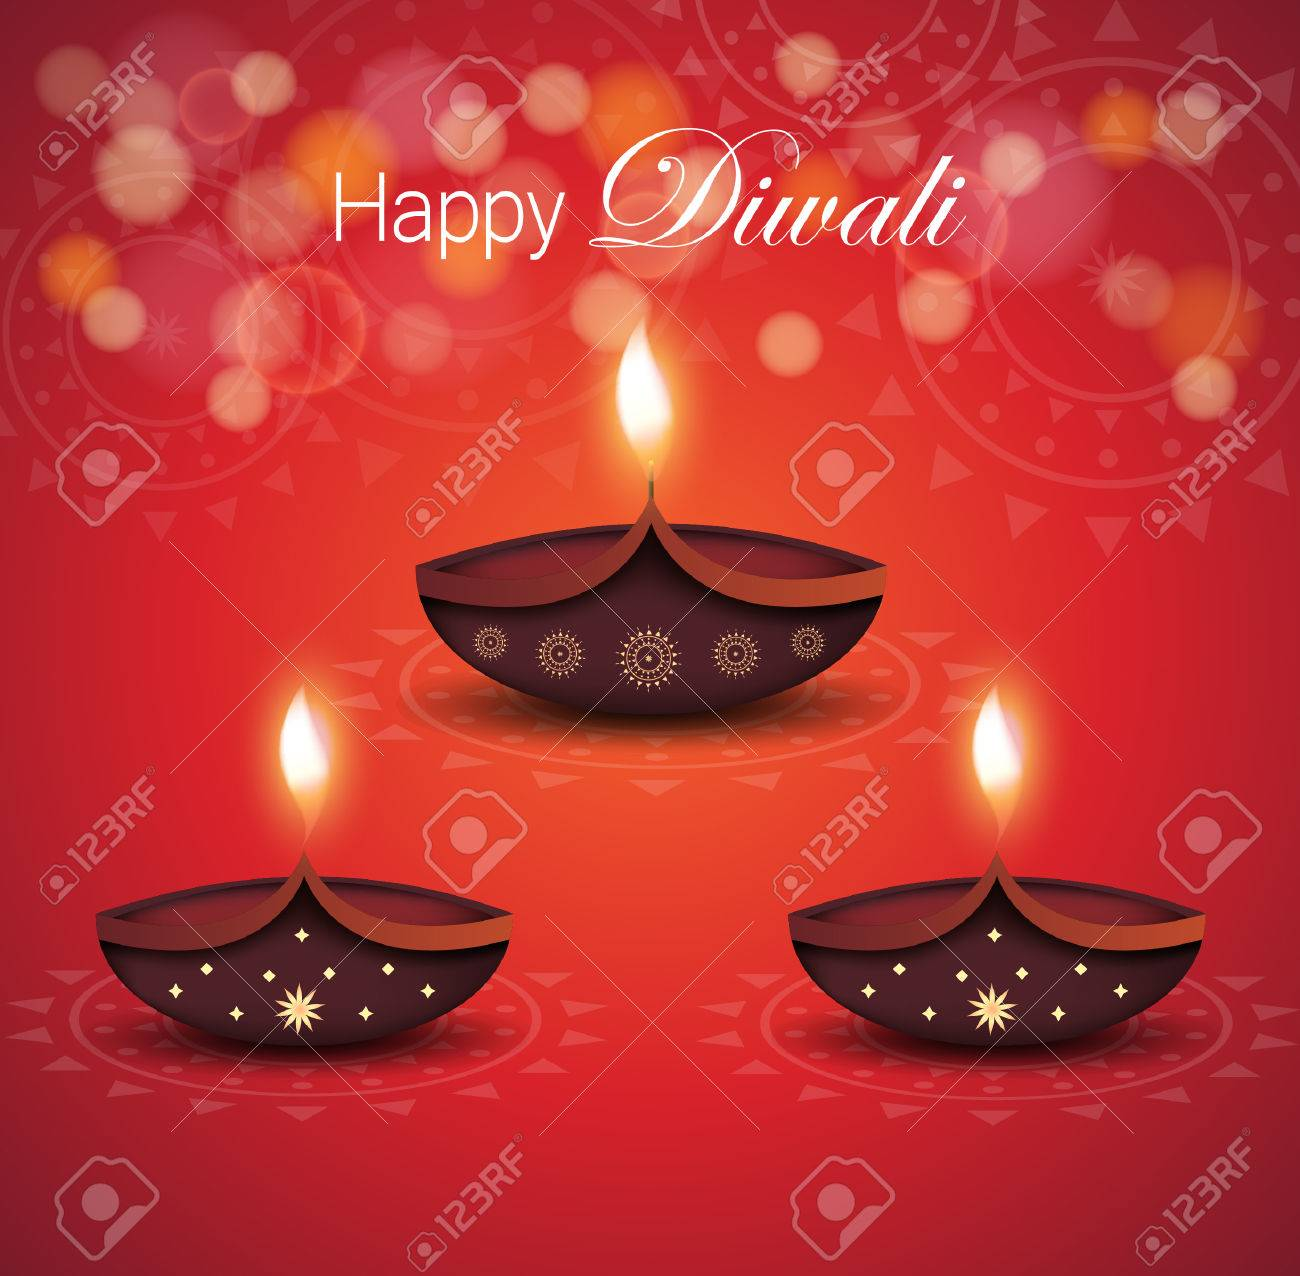 Happy Diwali Poster With Burning Diya On Red Background Vector